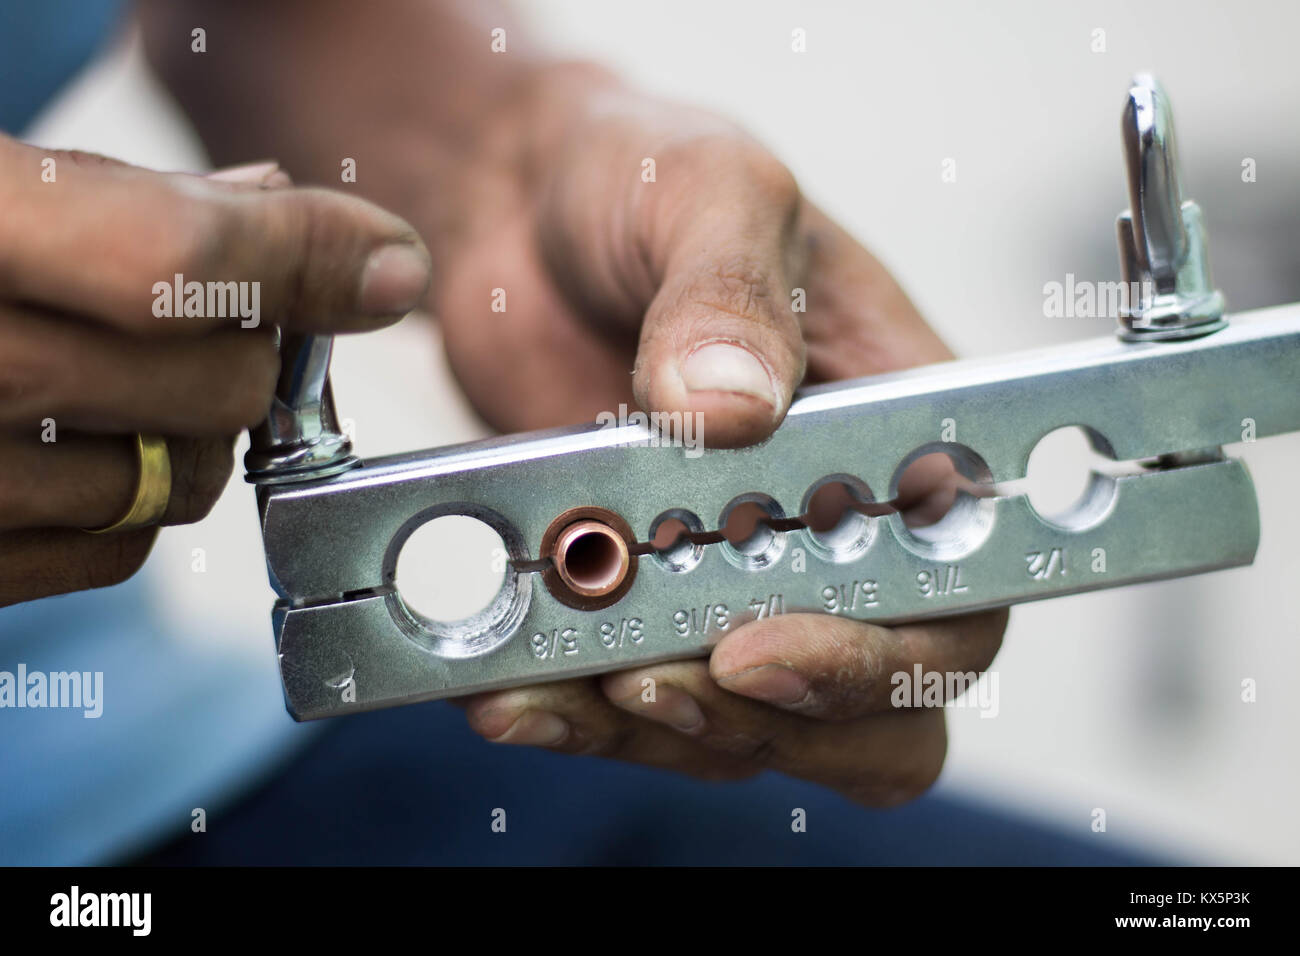 The hand of technician with tube flaring tool in air condition service - Stock Image